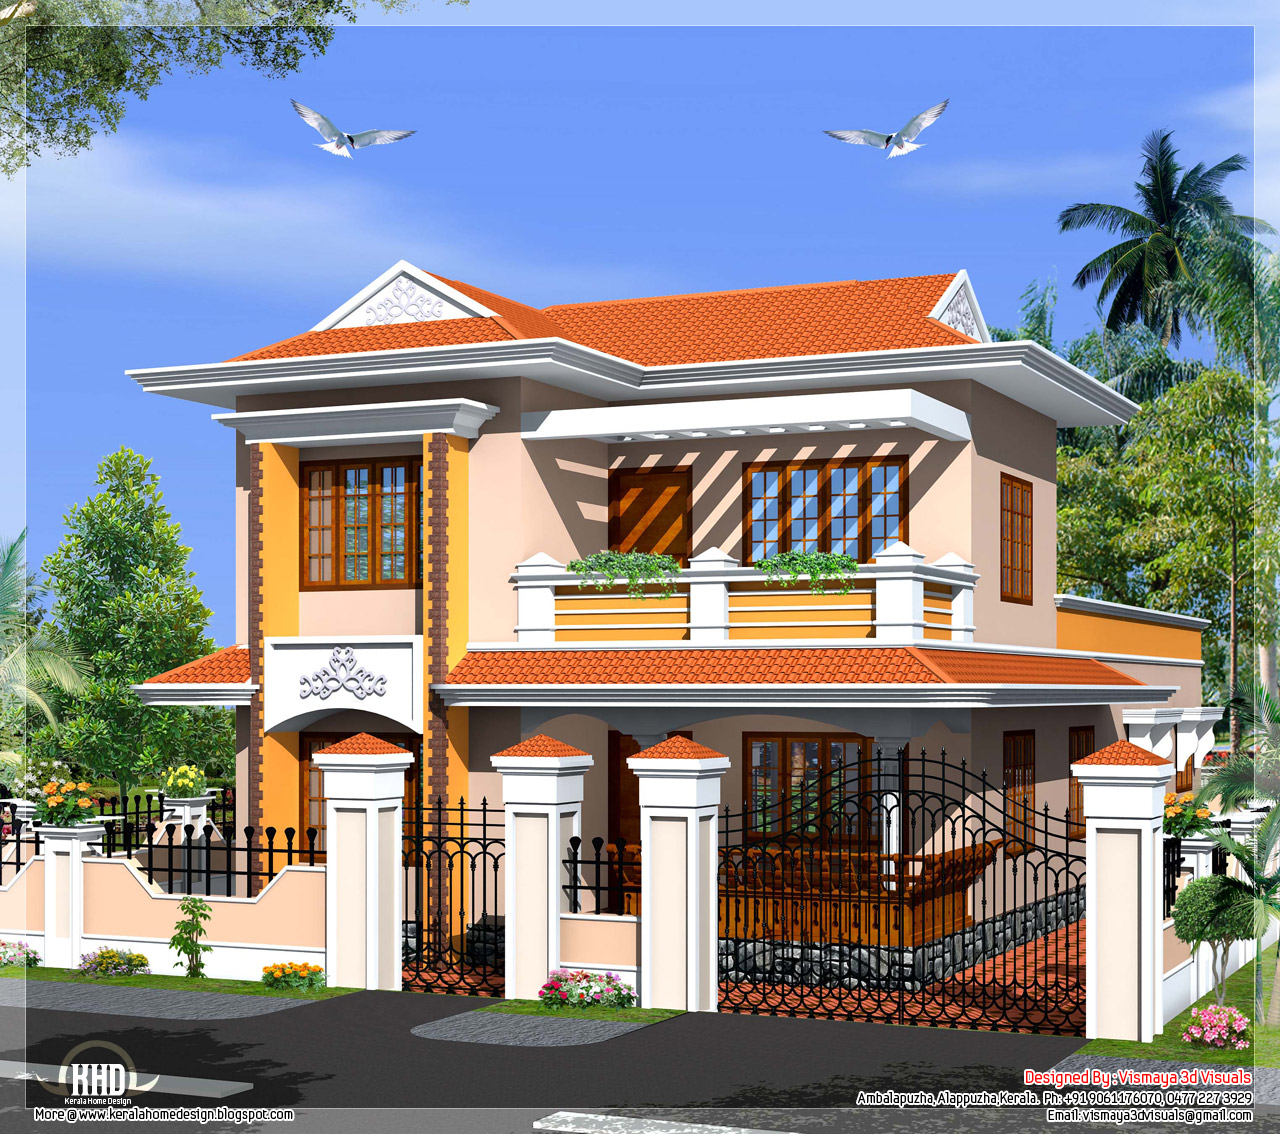 Kerala model villa in 2110 in square feet house design plans for New home designs 2015